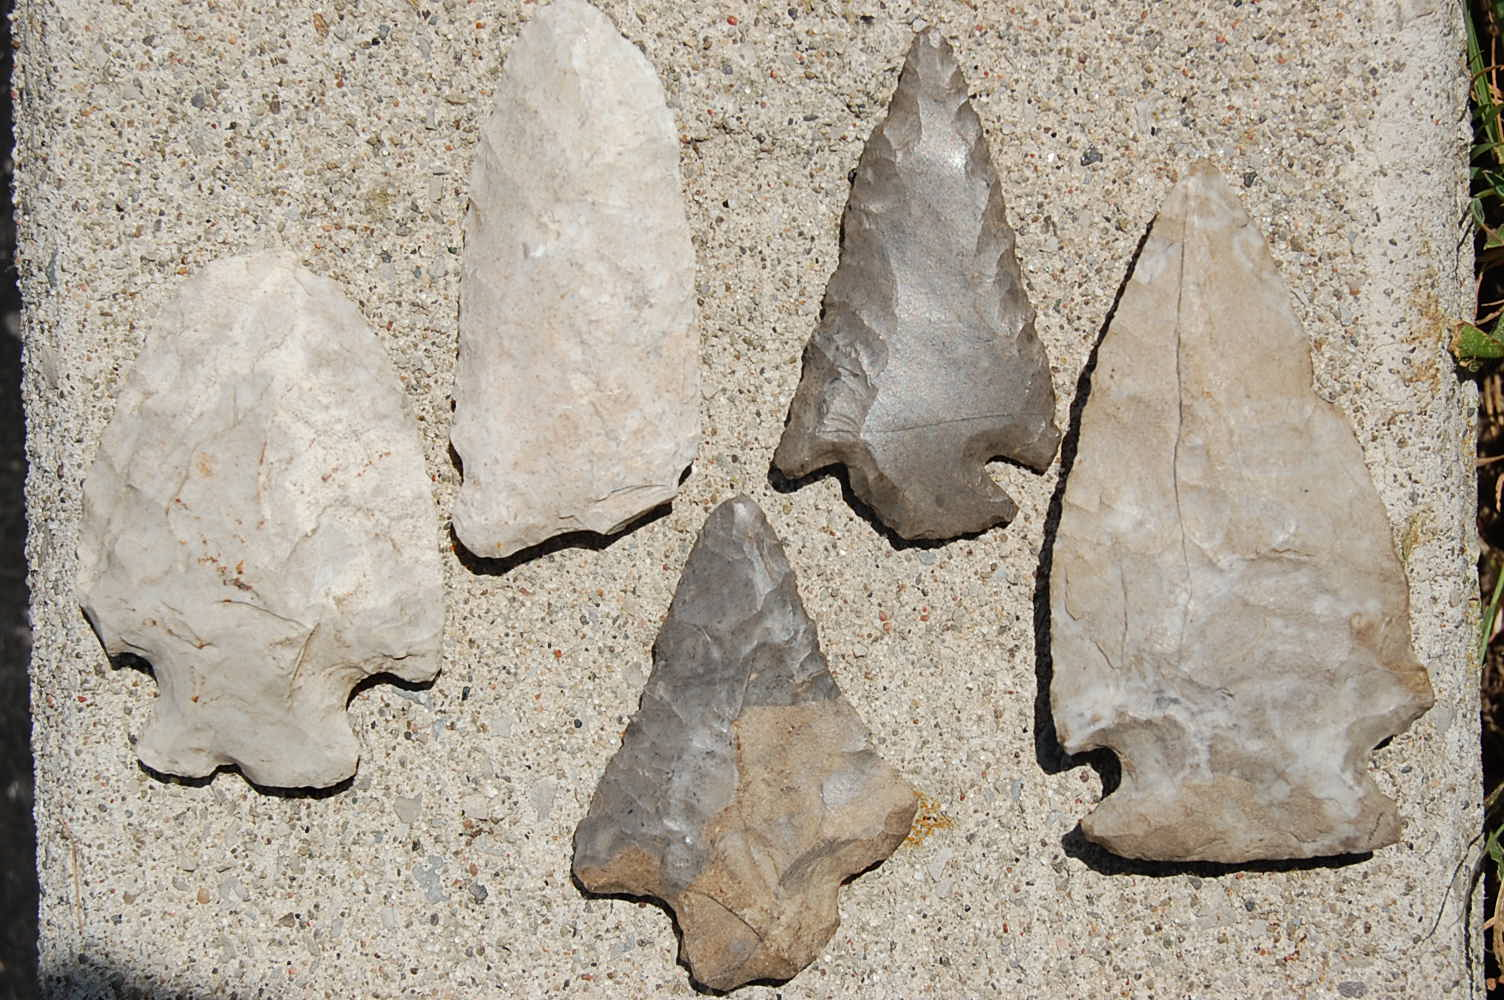 Ancient Arrowheads Made From Ancient Haldimand Stone